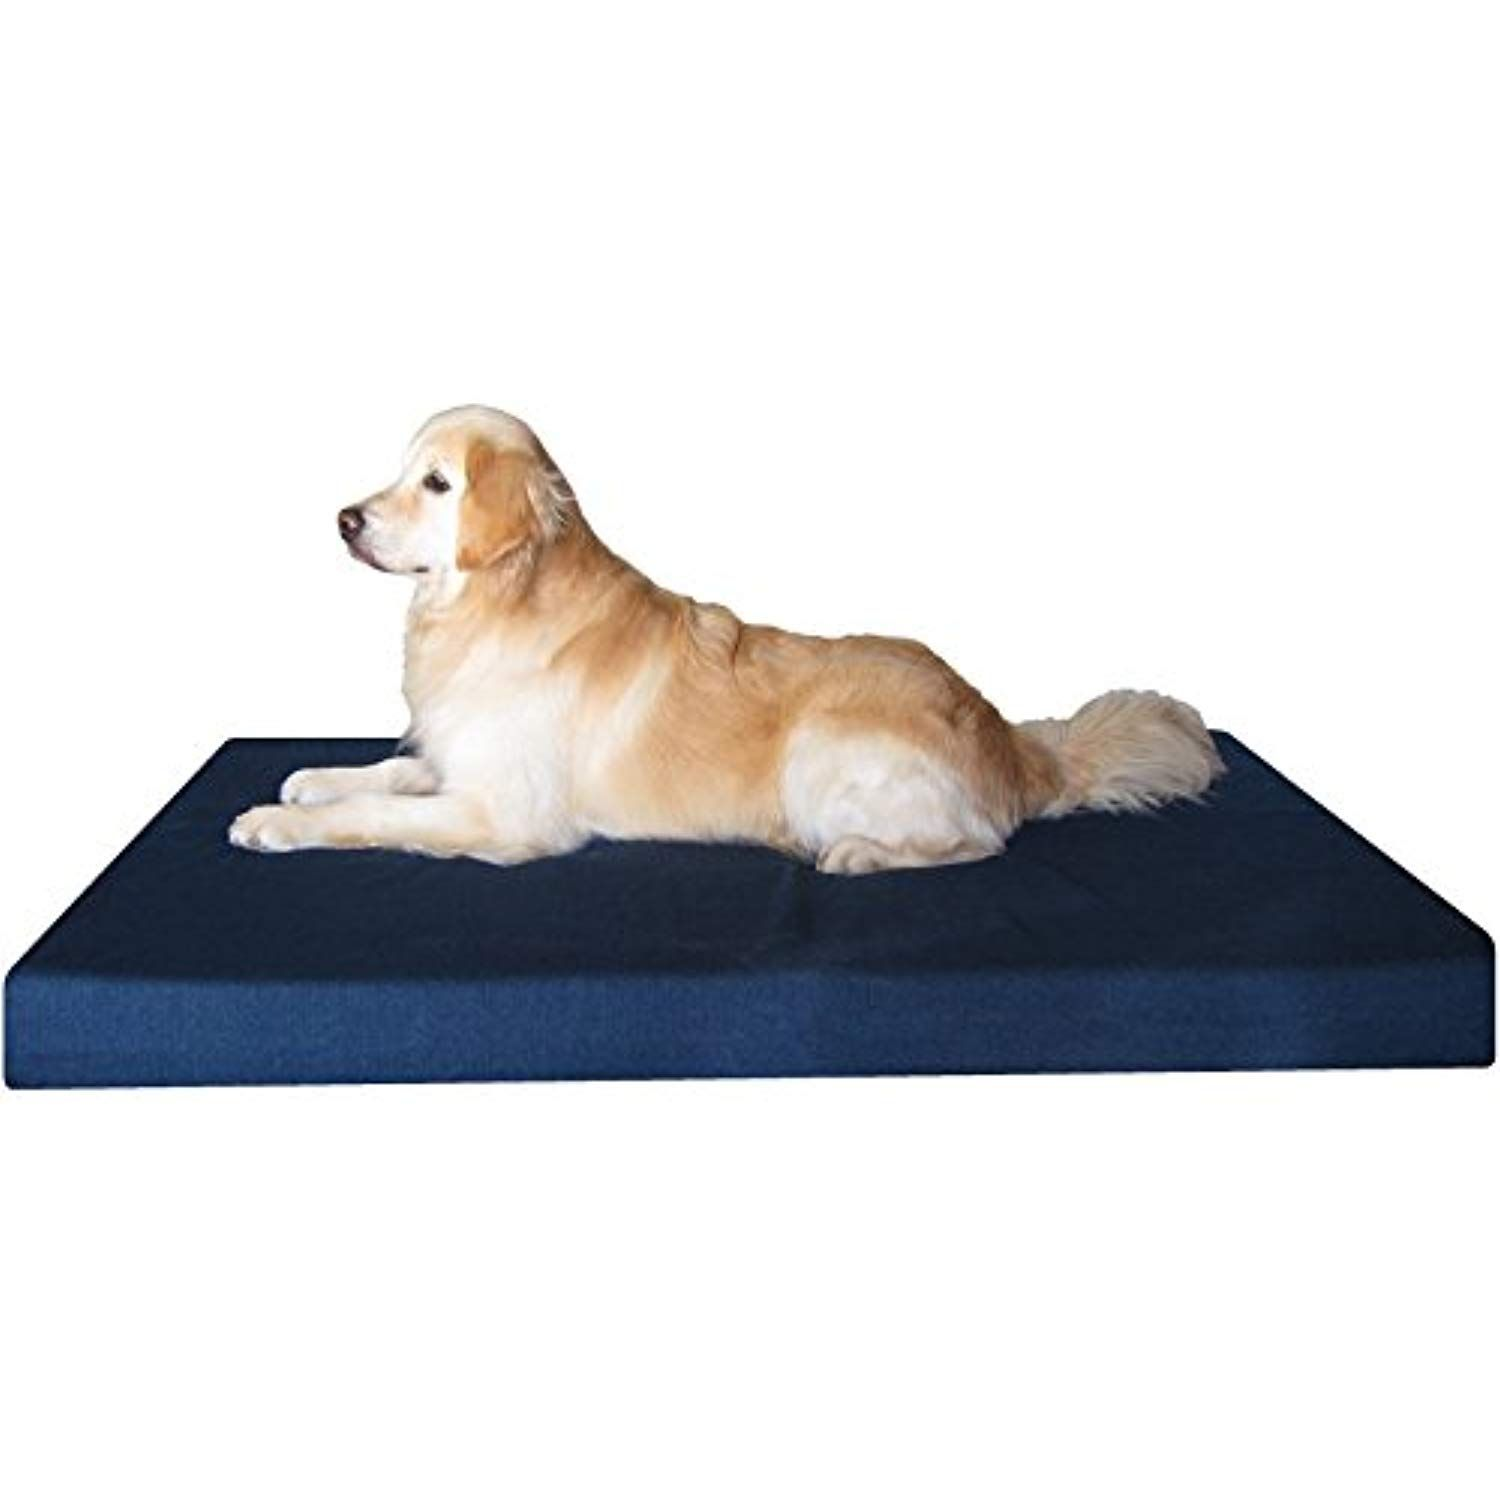 Dogbed4less Heavy Duty Xxl Orthopedic Gel Memory Foam Pet Bed With Waterproof Internal Case 2 Washable Denim Exte In 2020 Snuggle Dog Bed Dog Bed Memory Foam Dog Bed